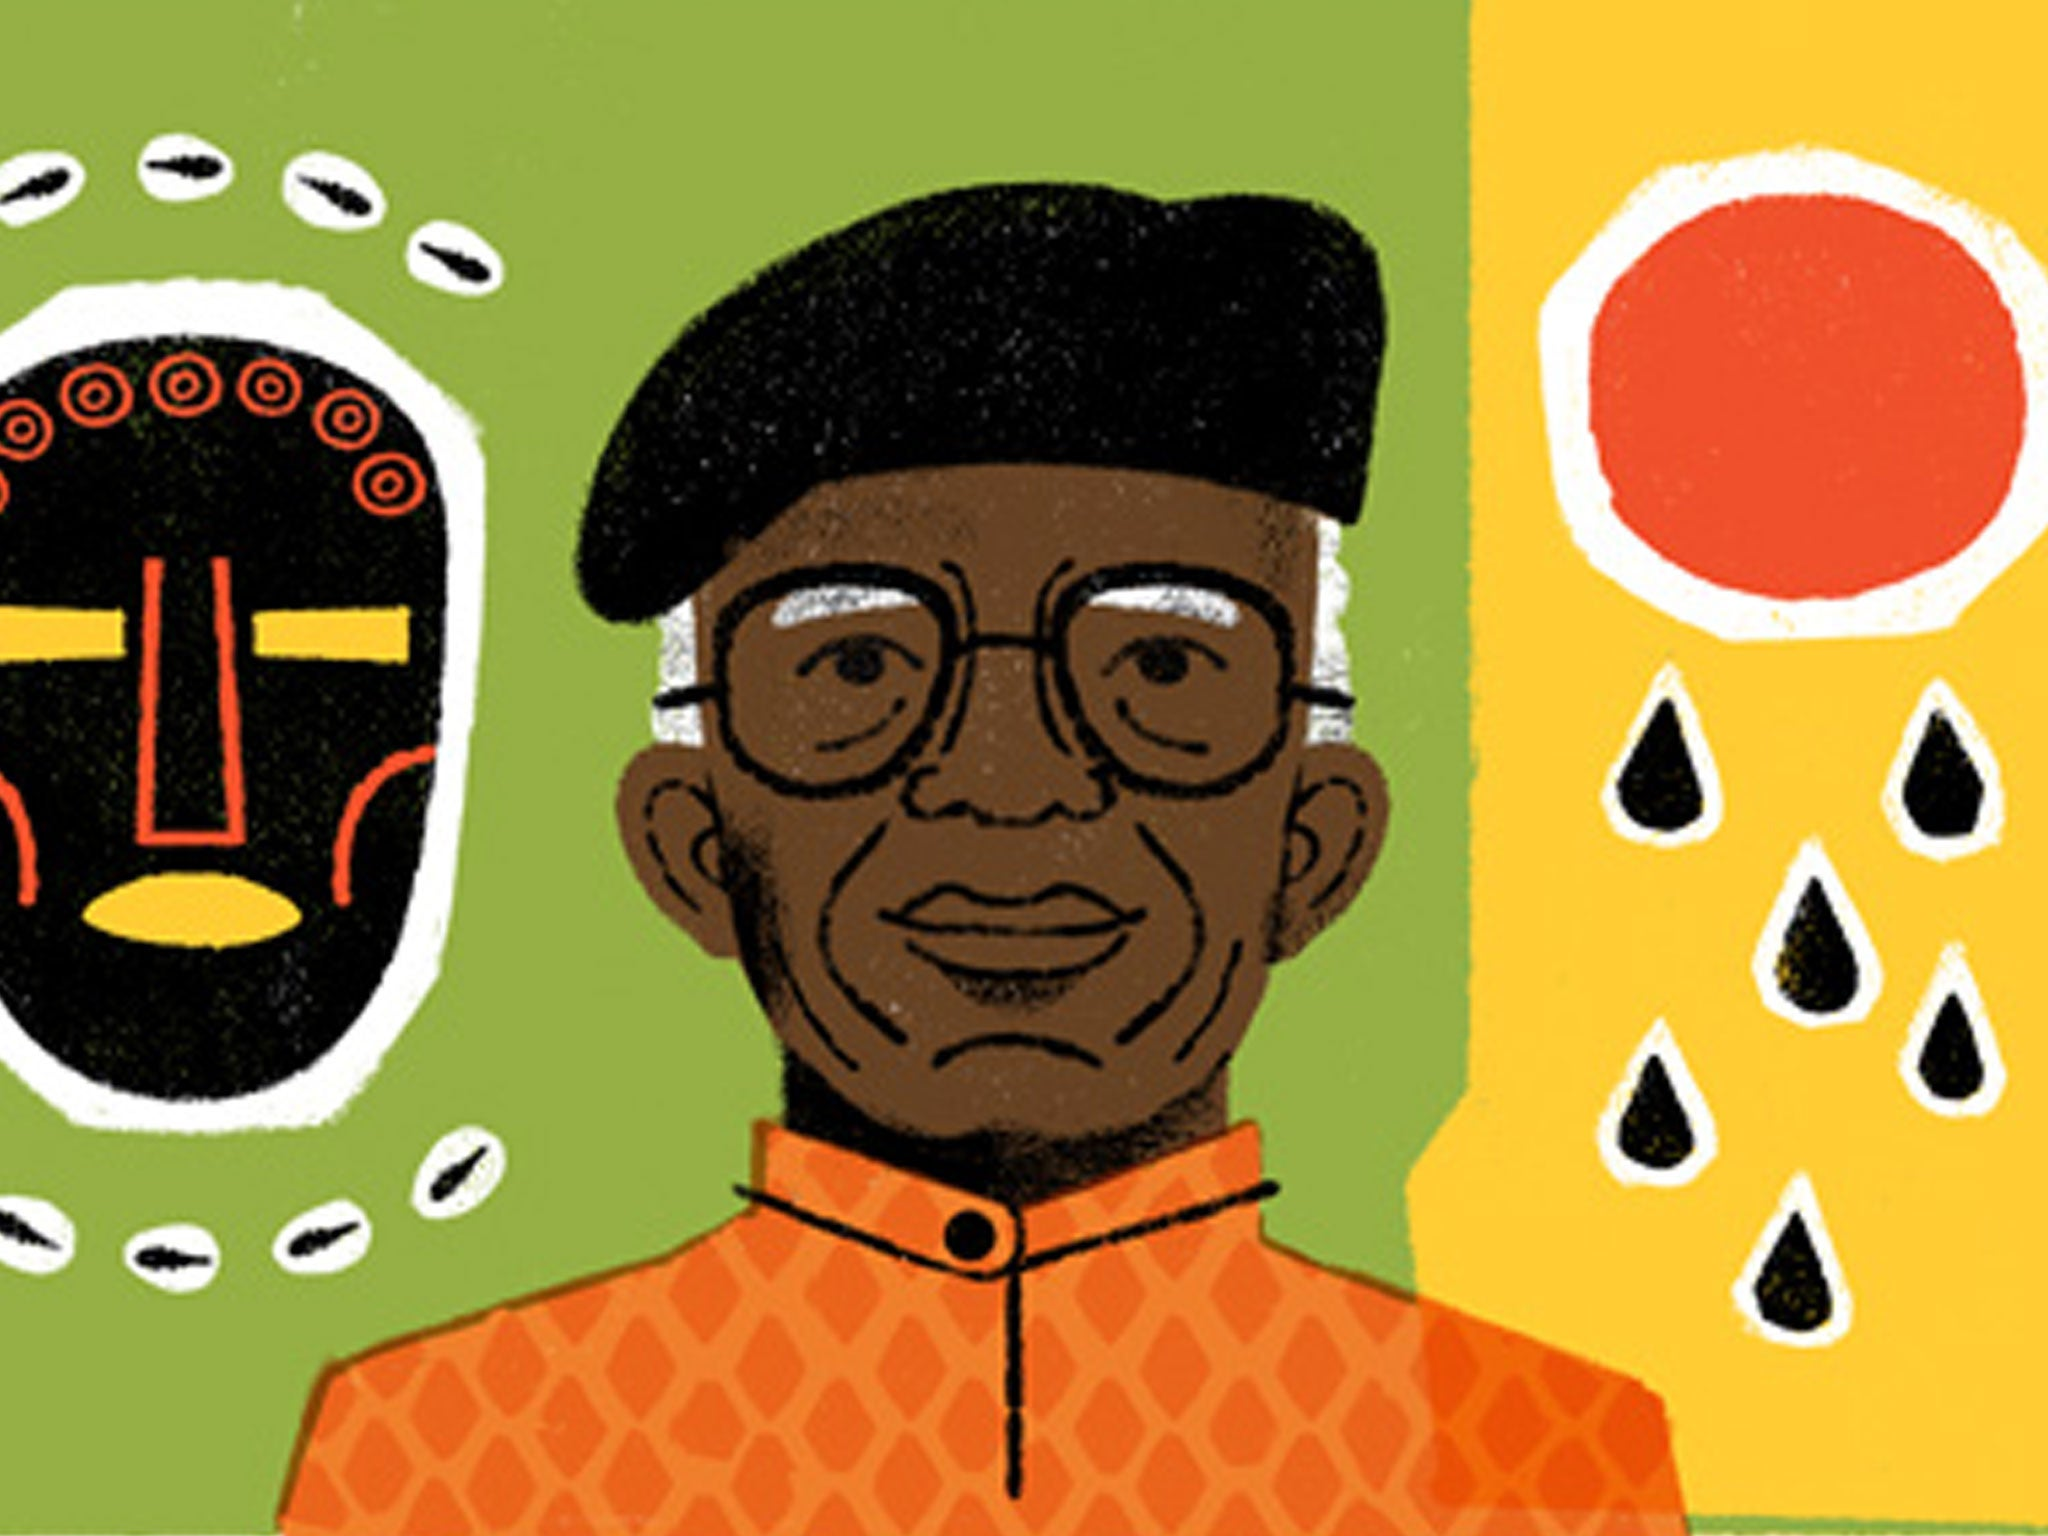 chinua achebe A summary of themes in chinua achebe's things fall apart learn exactly what happened in this chapter, scene, or section of things fall apart and what it means perfect for acing essays, tests, and quizzes, as well as for writing lesson plans.